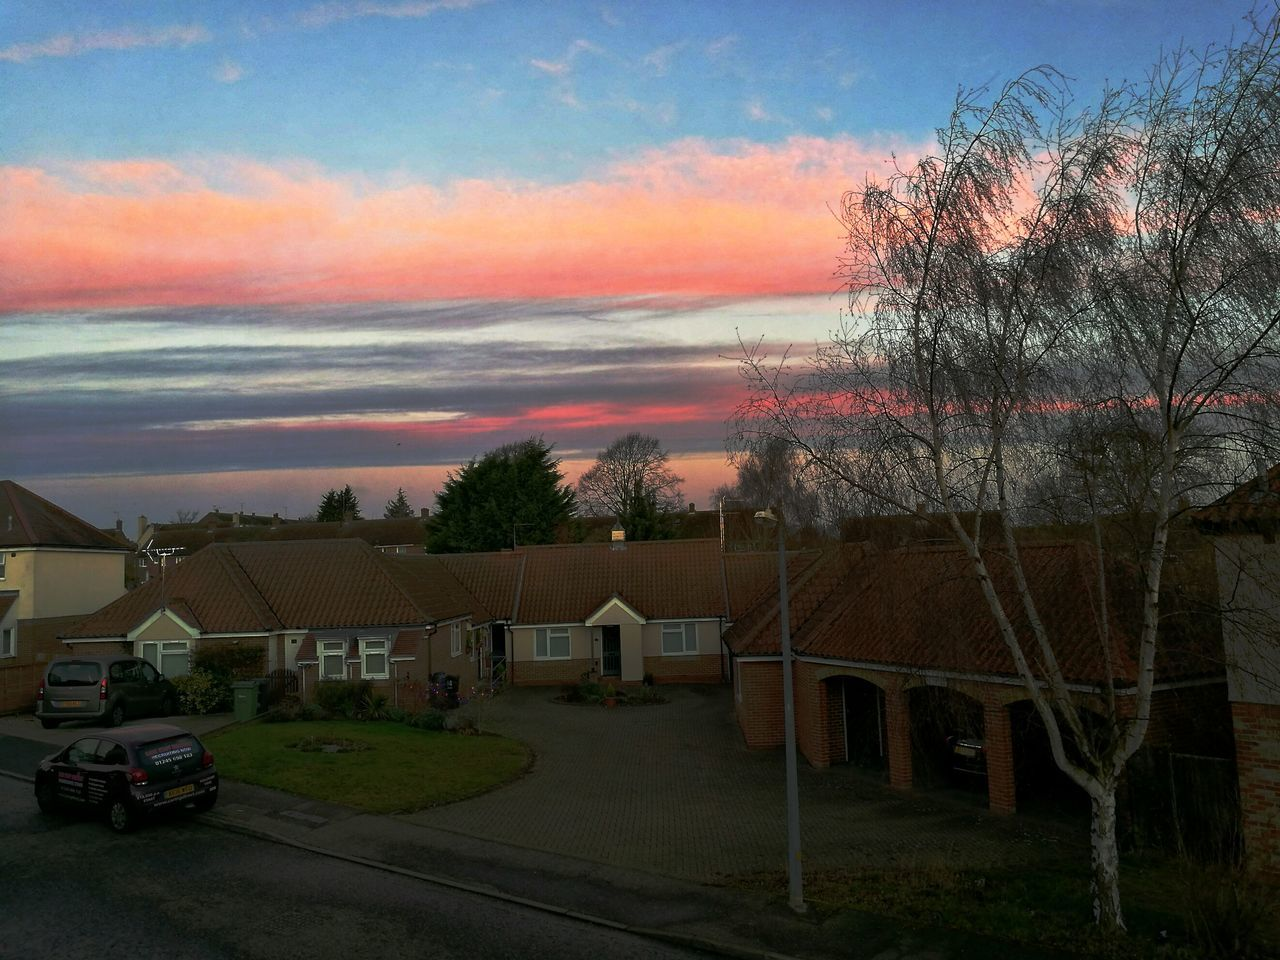 built structure, building exterior, sky, architecture, house, tree, cloud - sky, no people, outdoors, sunset, car, residential building, nature, day, beauty in nature